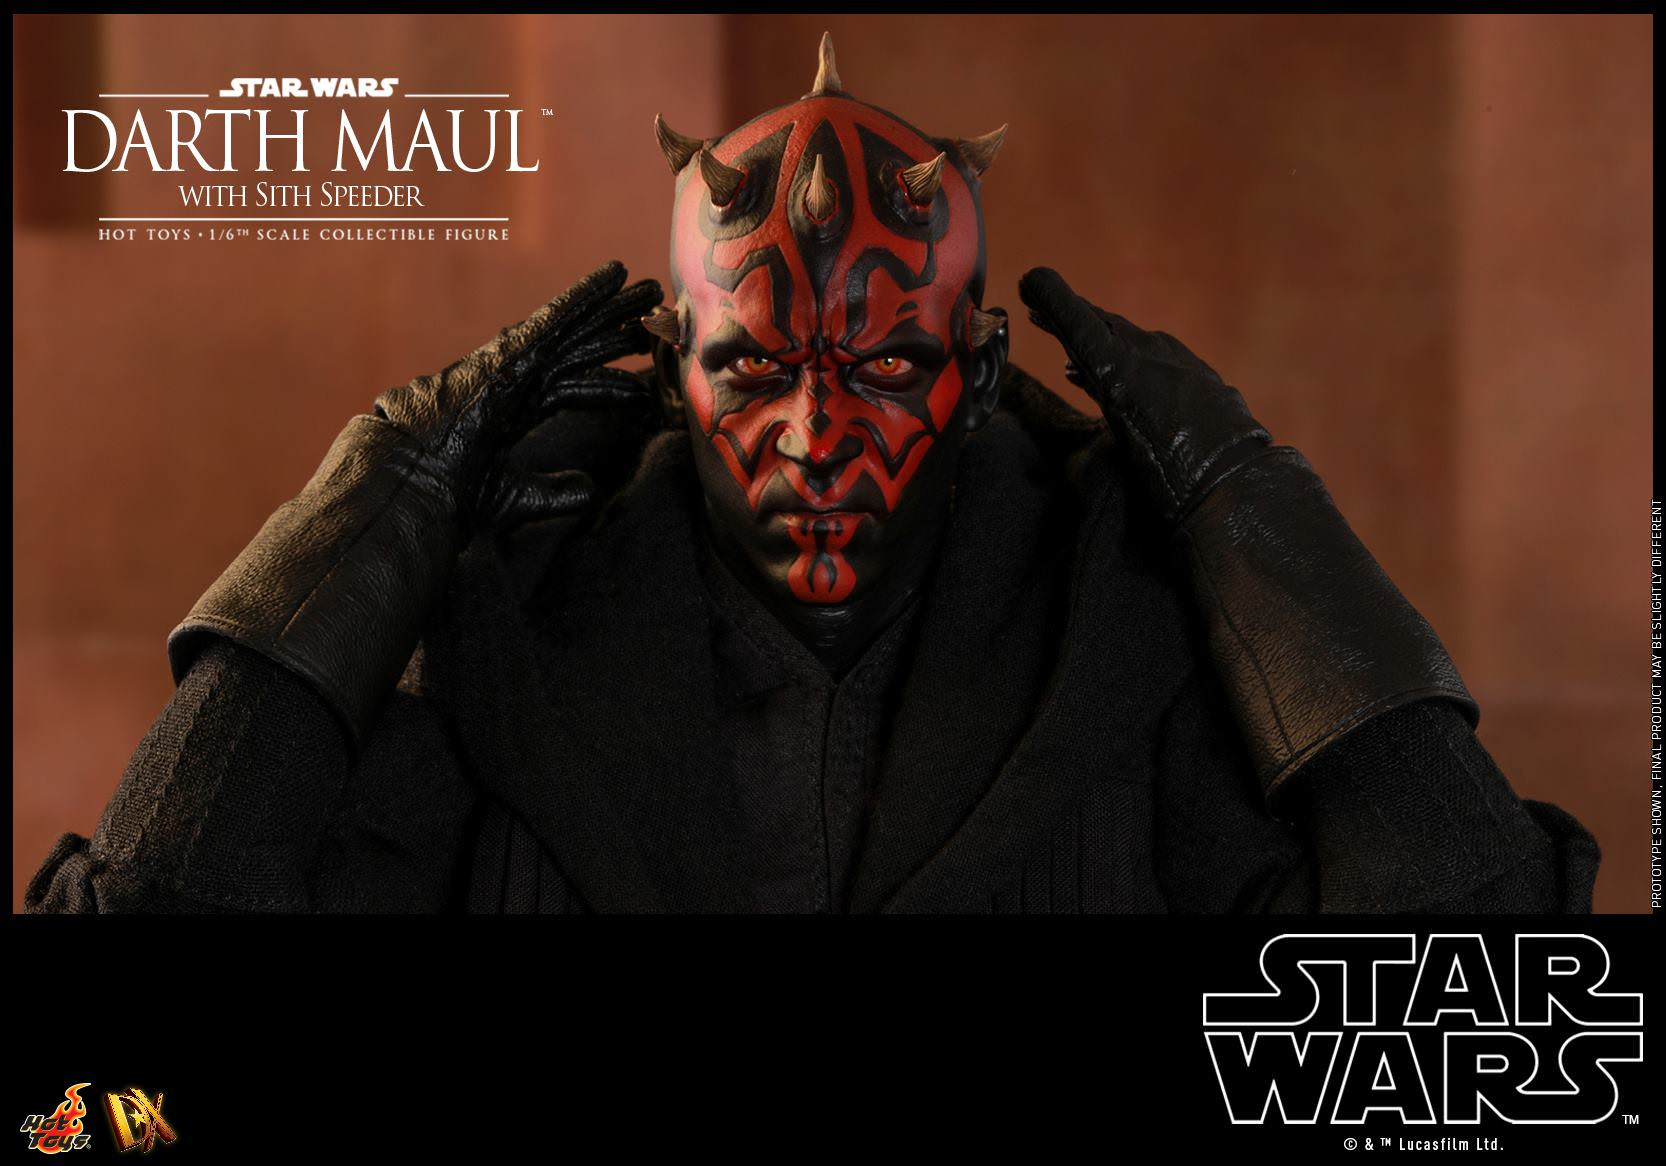 Hot Toys Star Wars: The Phantom Menace DX17 Darth Maul With Speeder 1/6 Scale Collectible Figure